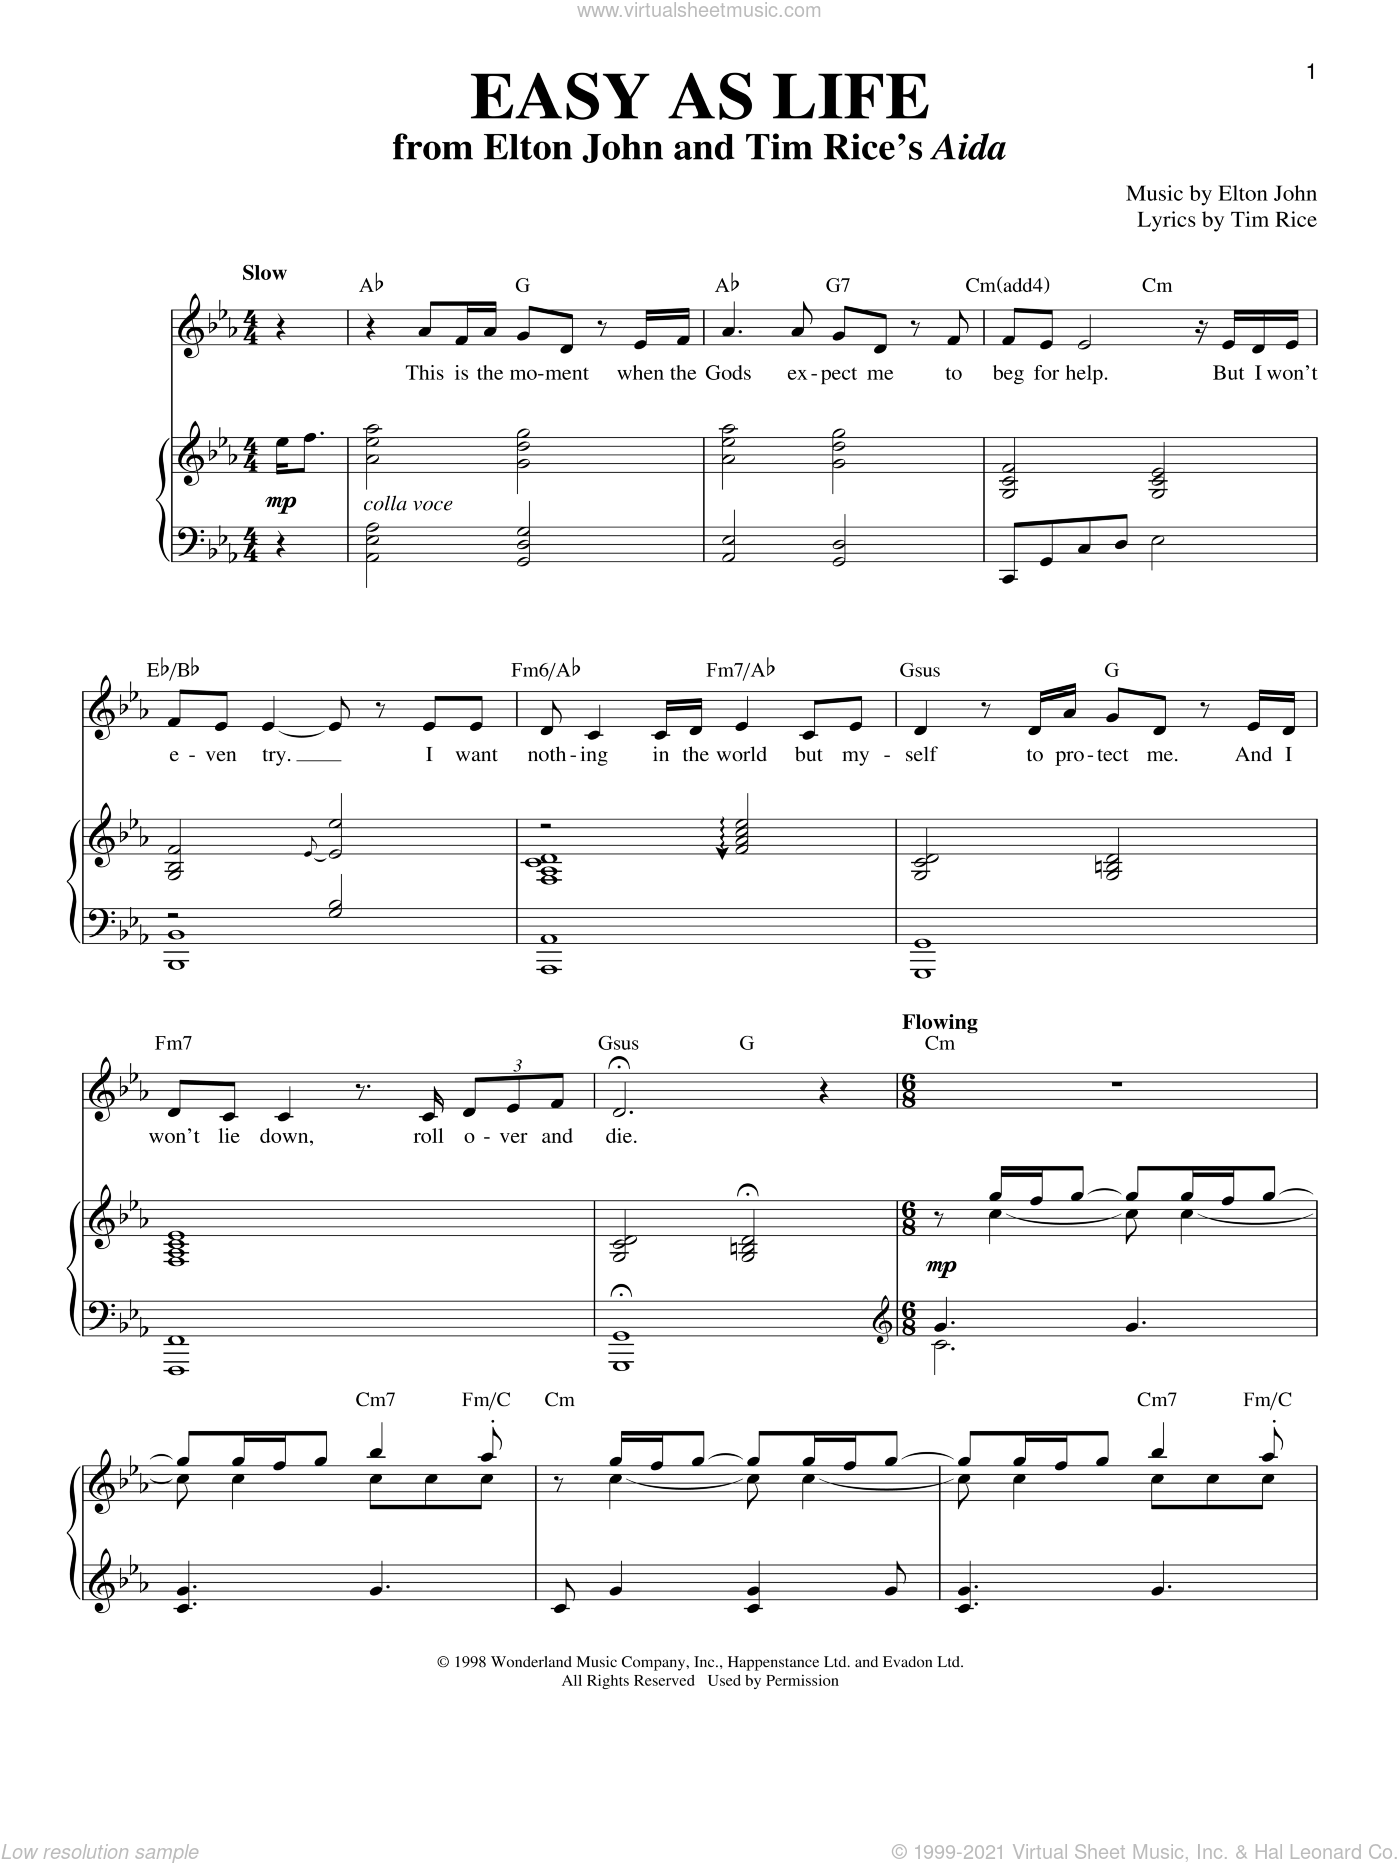 Easy As Life sheet music for voice and piano by Elton John and Tim Rice, intermediate